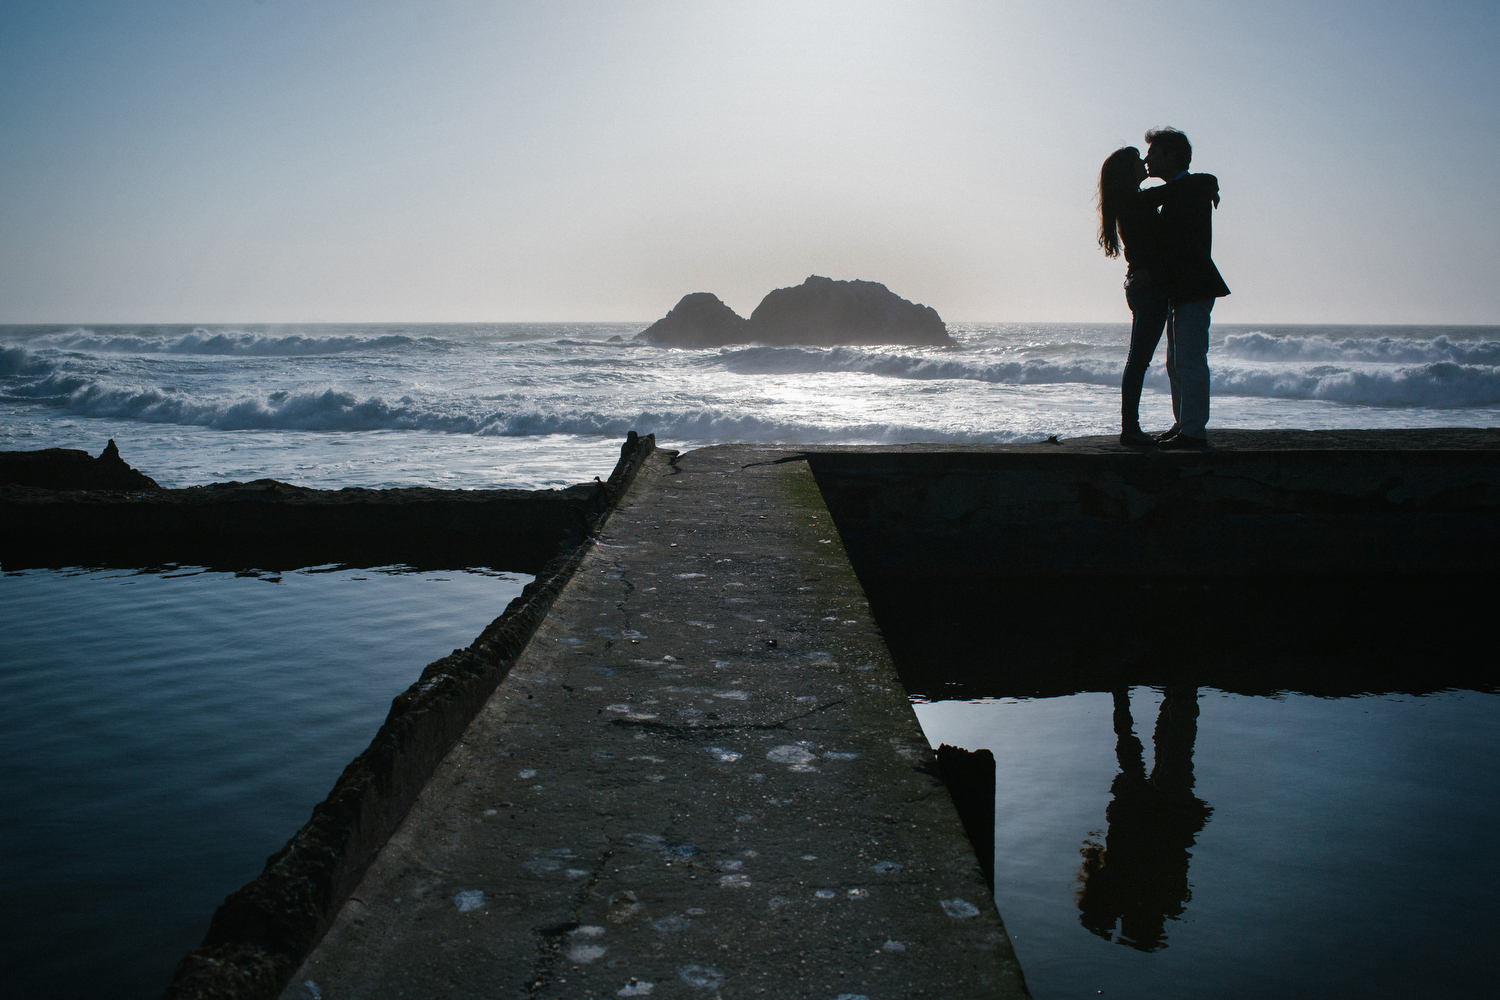 Sutro Baths engagement shoot with Neta and Pasha.